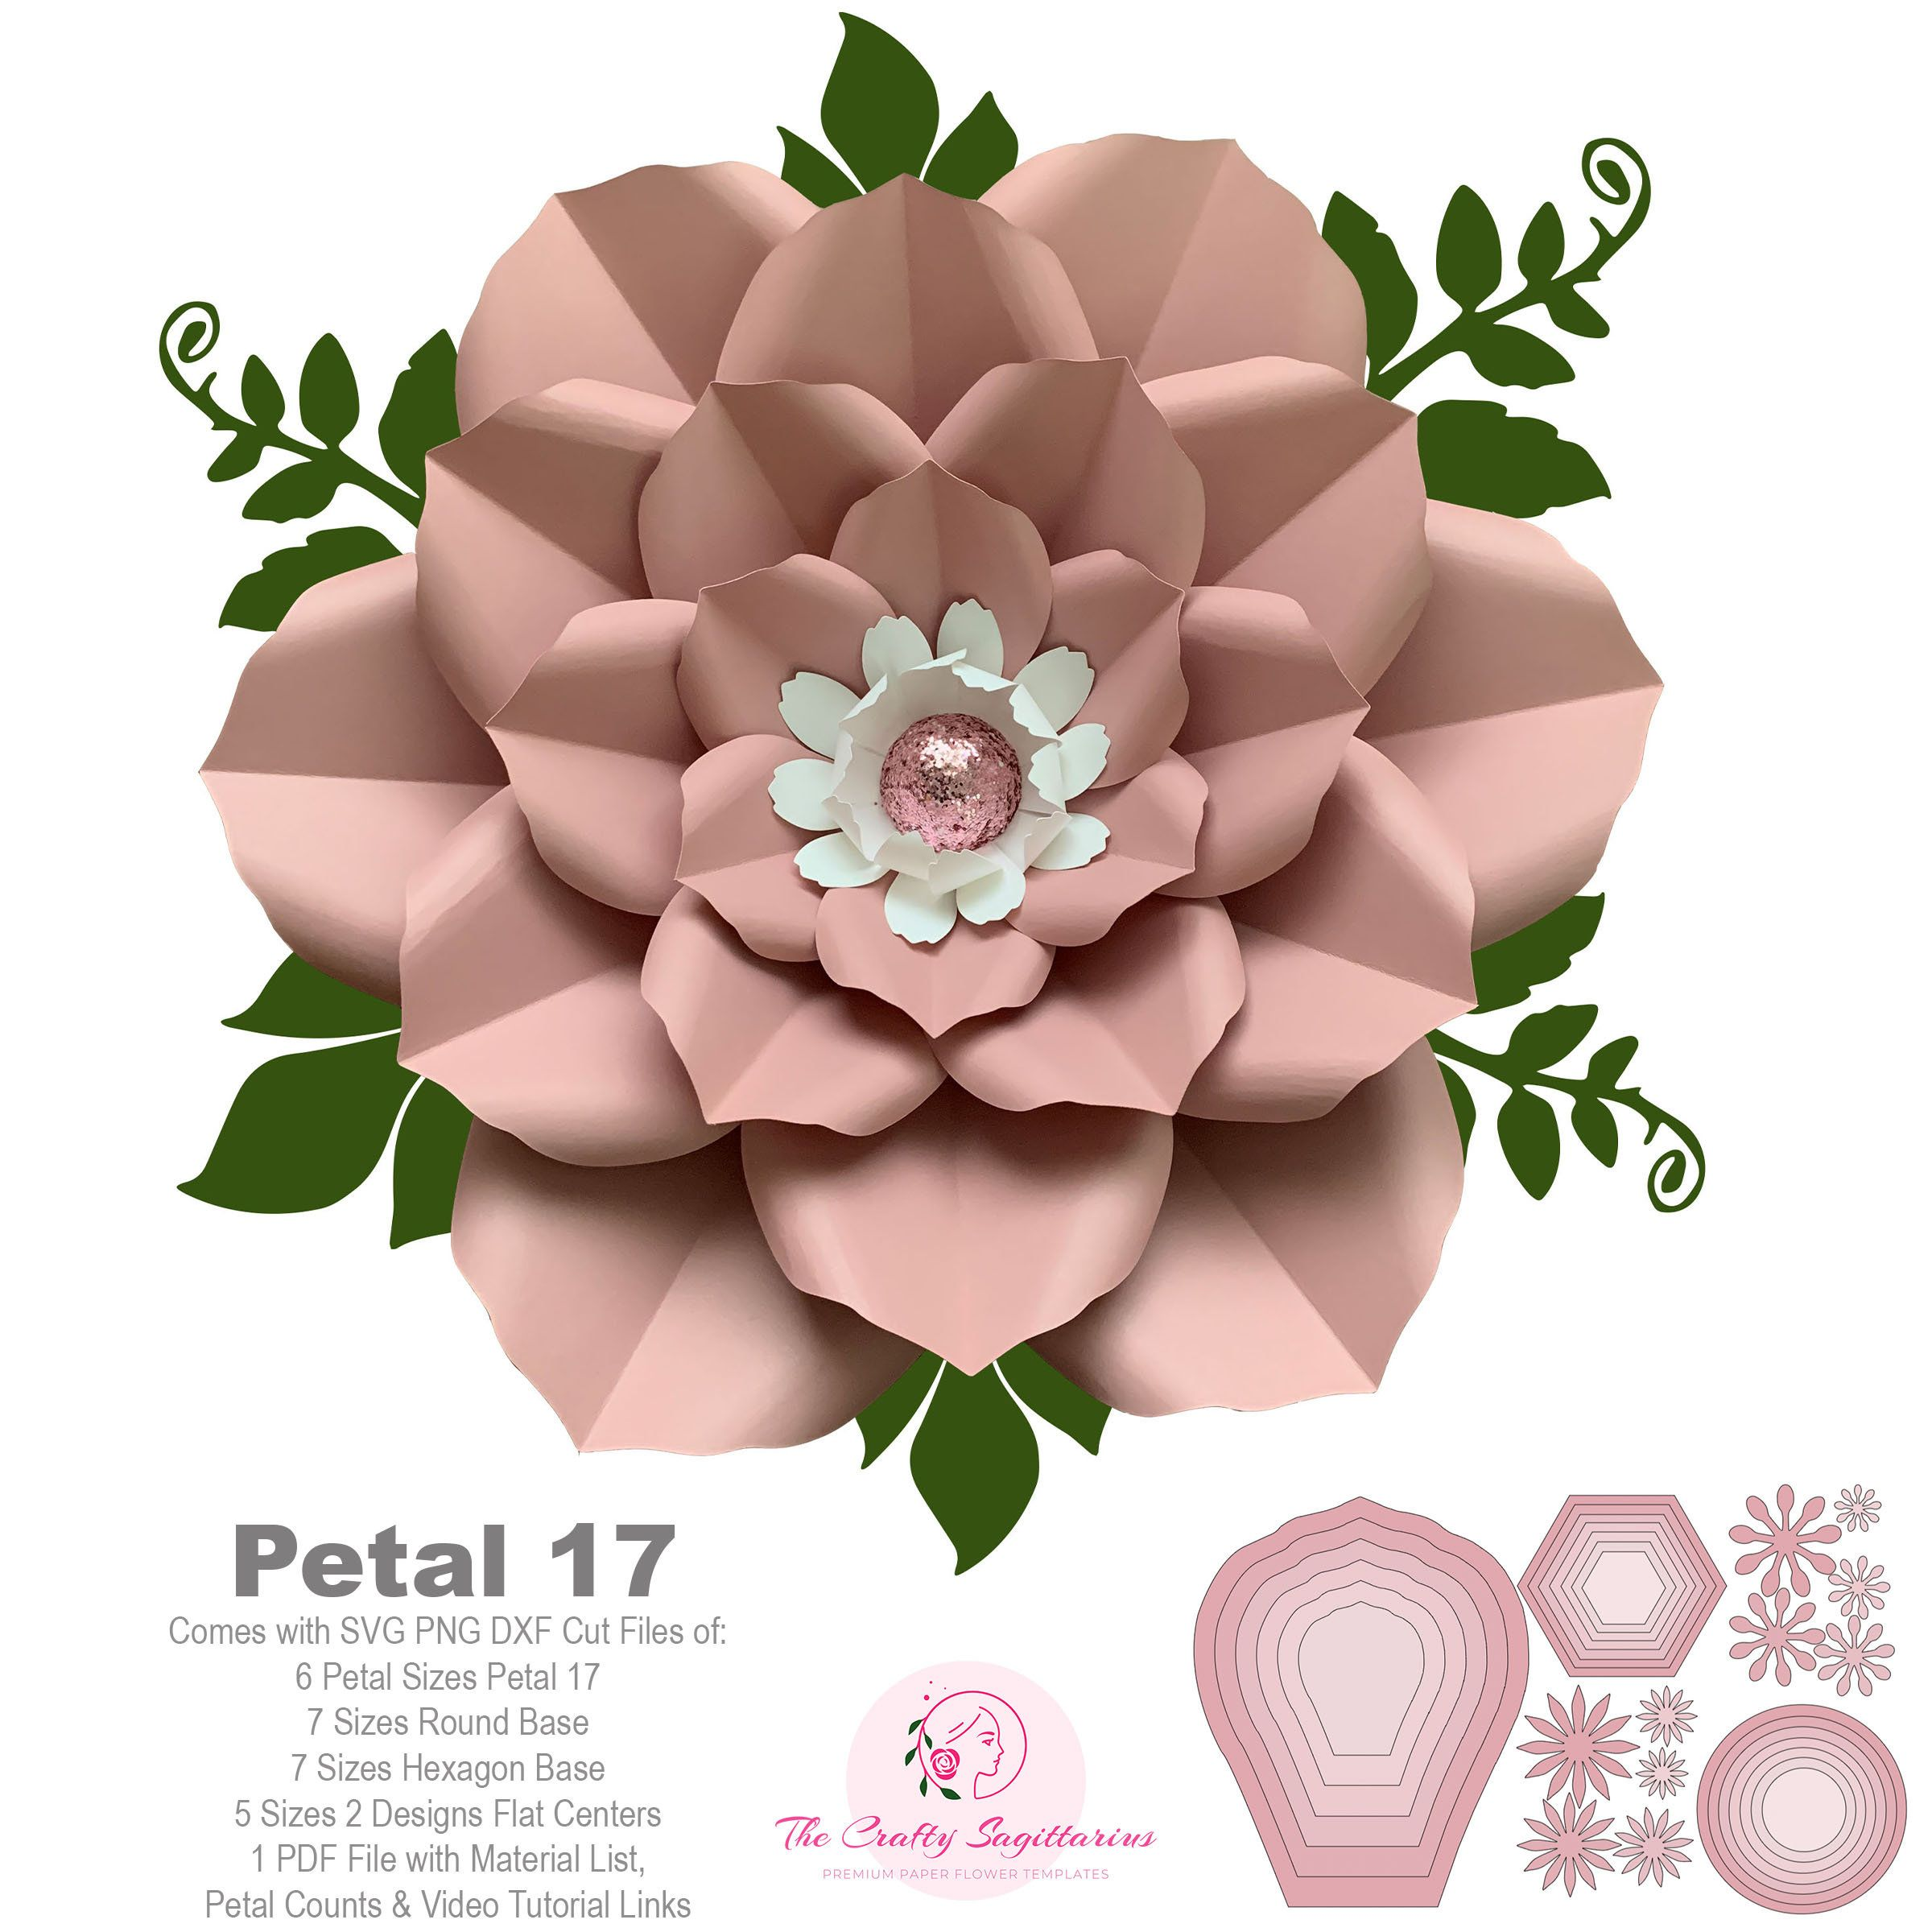 Petal 17 Svg Png Dxf Giant Paper Flowers Template Kit Stencils